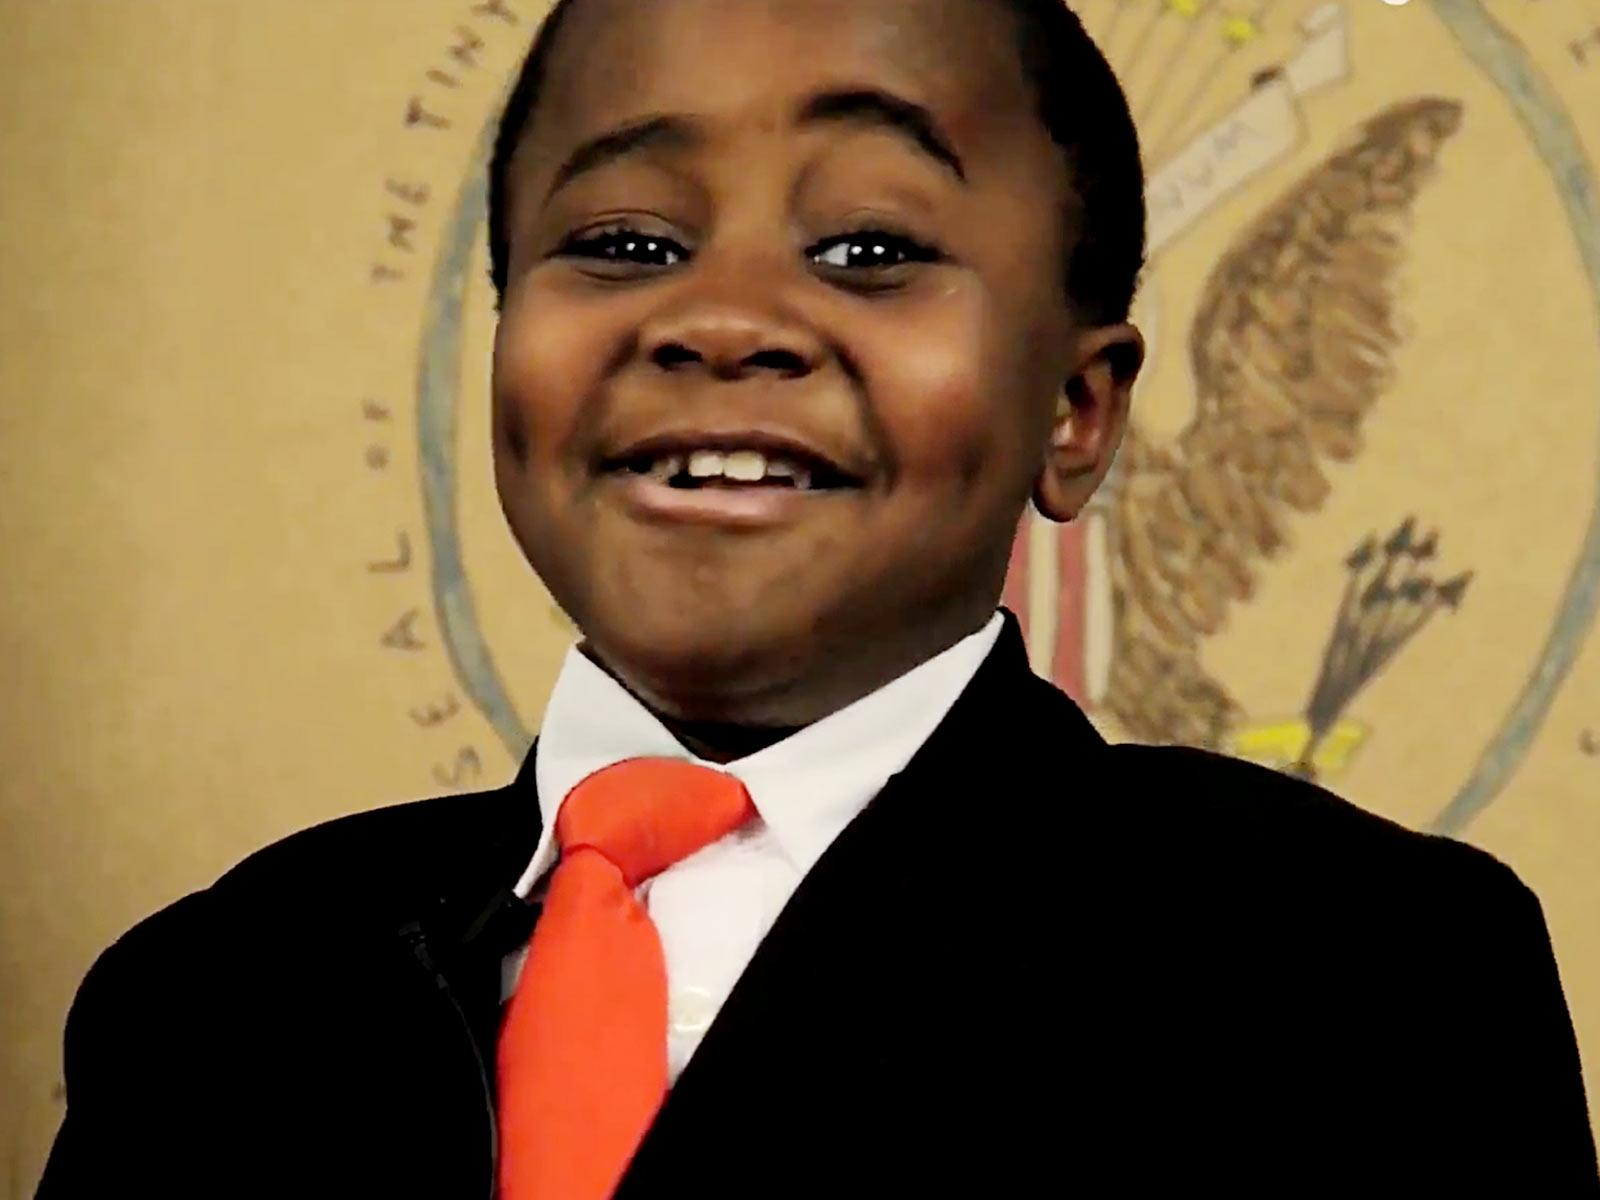 kid president height